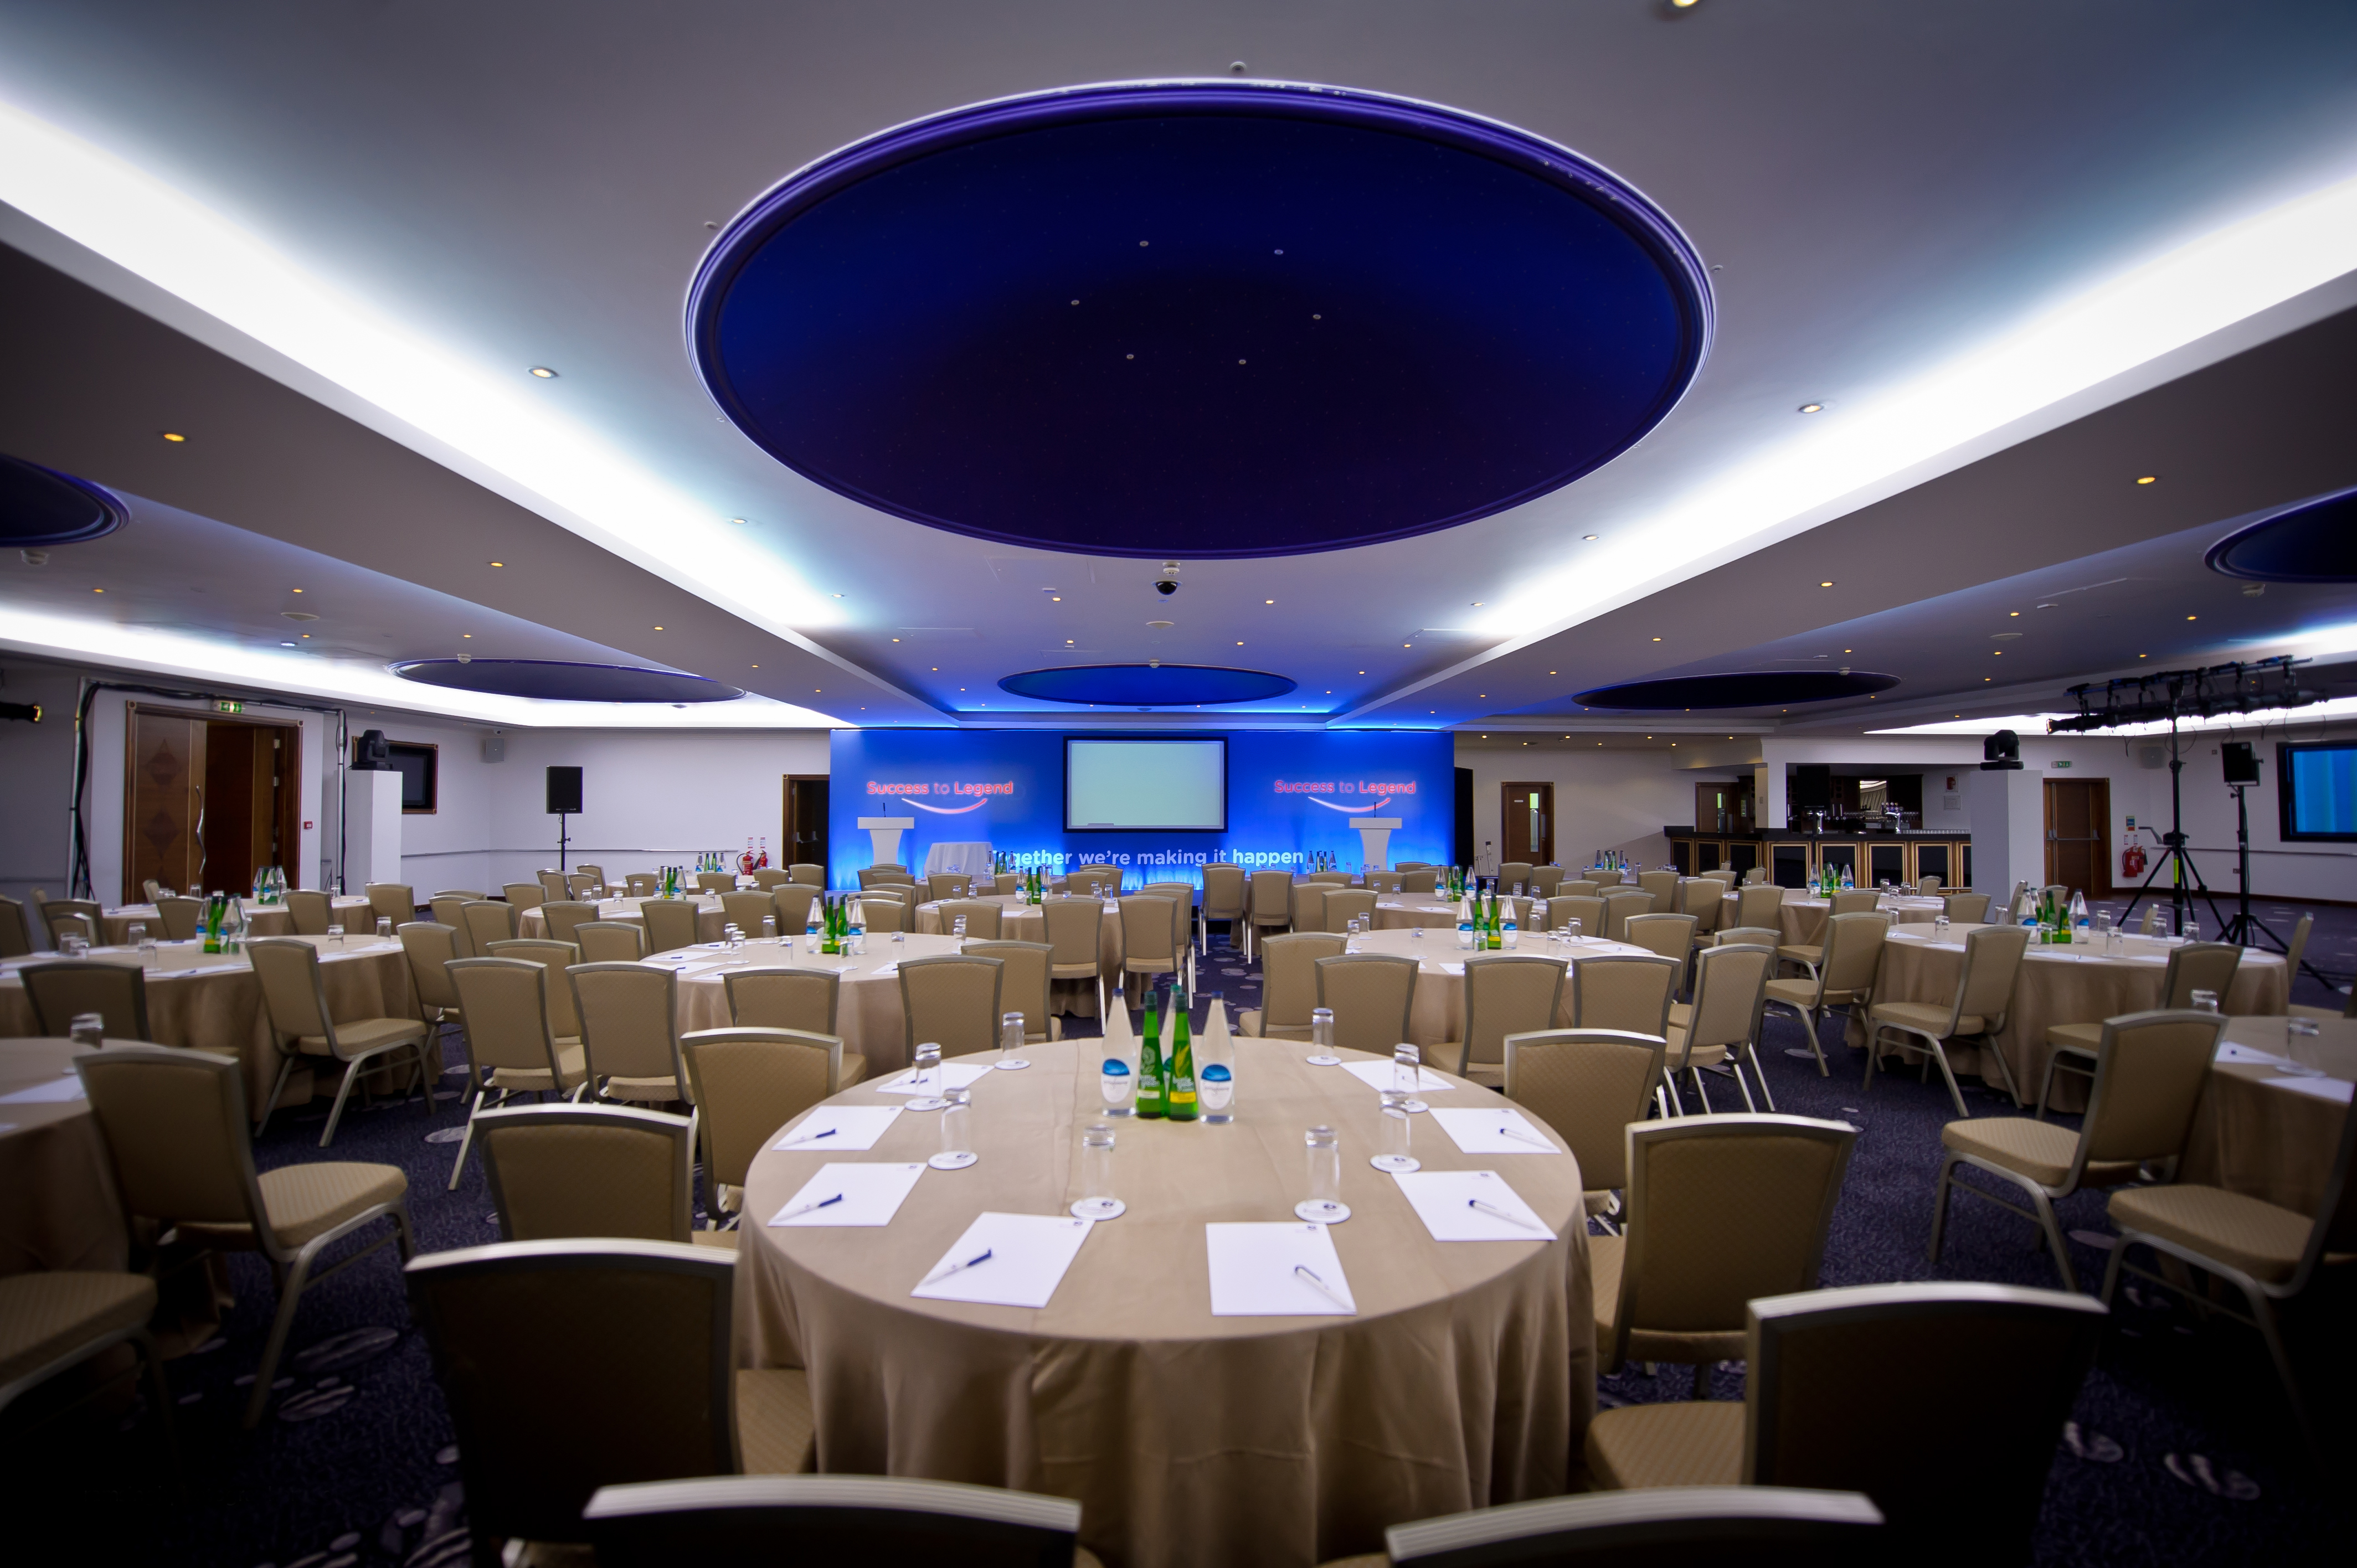 Whitbread Conference set up